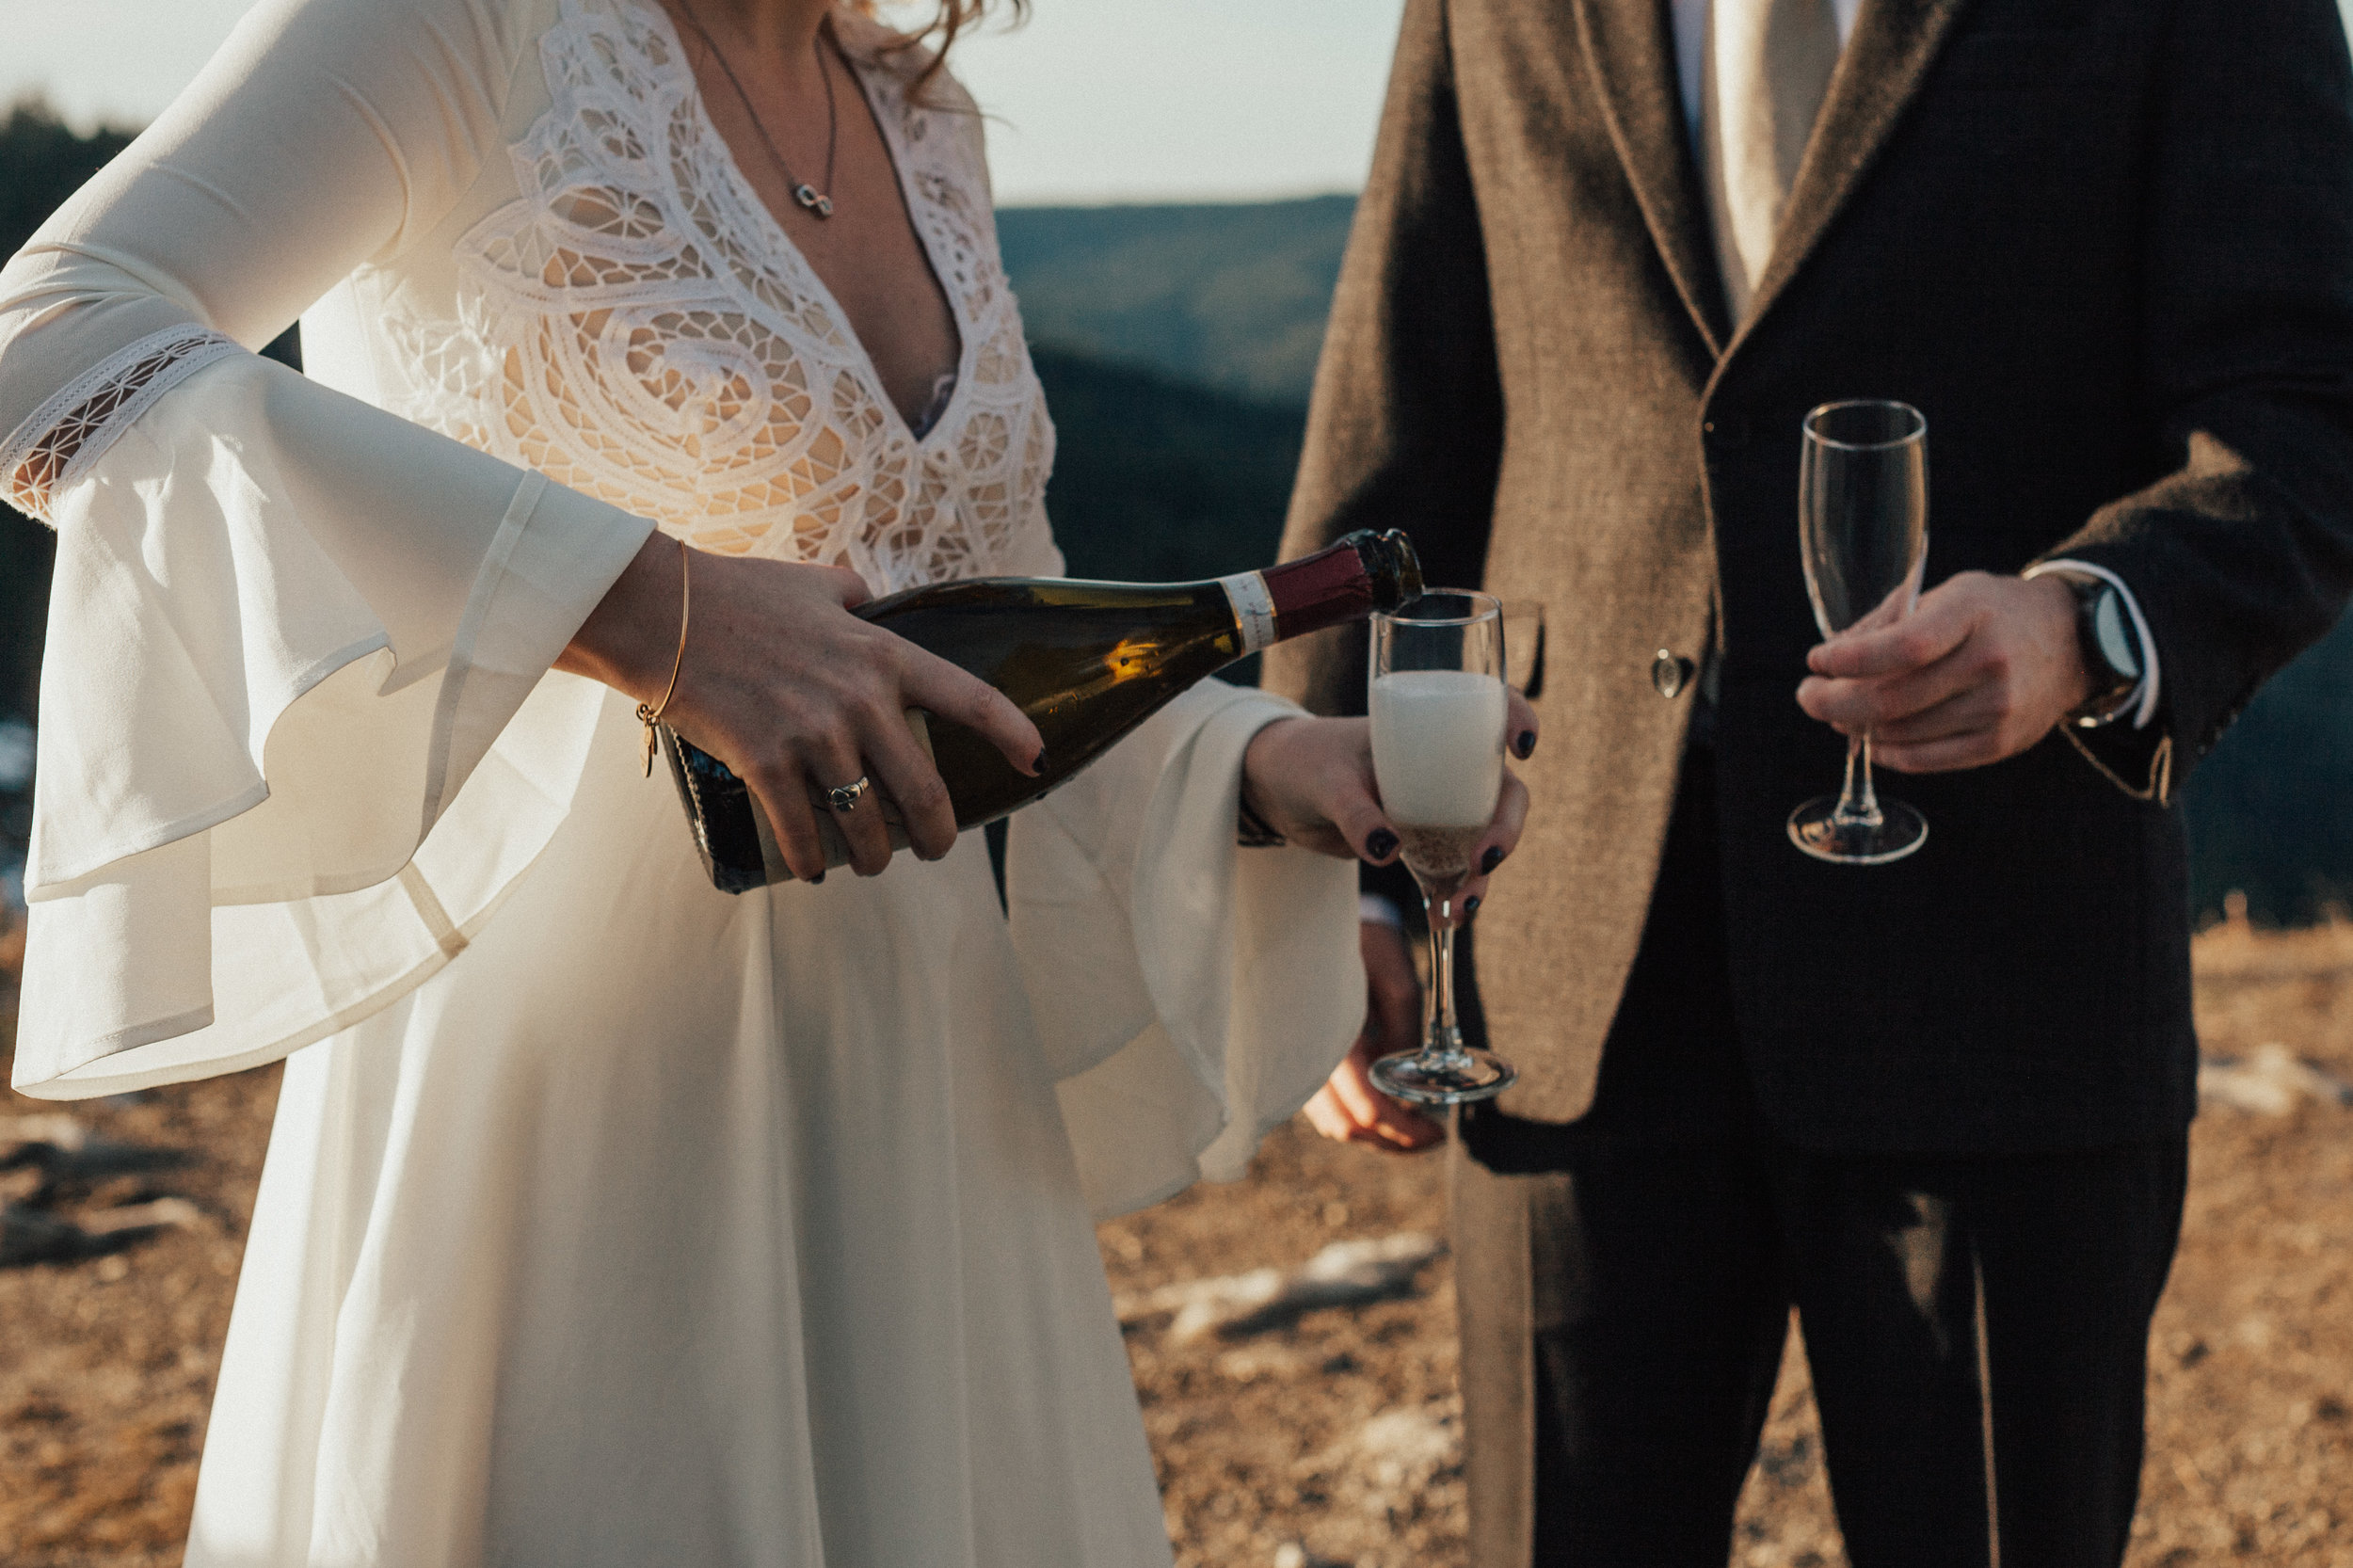 Cropped photo of bride pouring champagne into their glasses. Her wedding dress has the most beautiful bell sleeves that catch the sunlight.